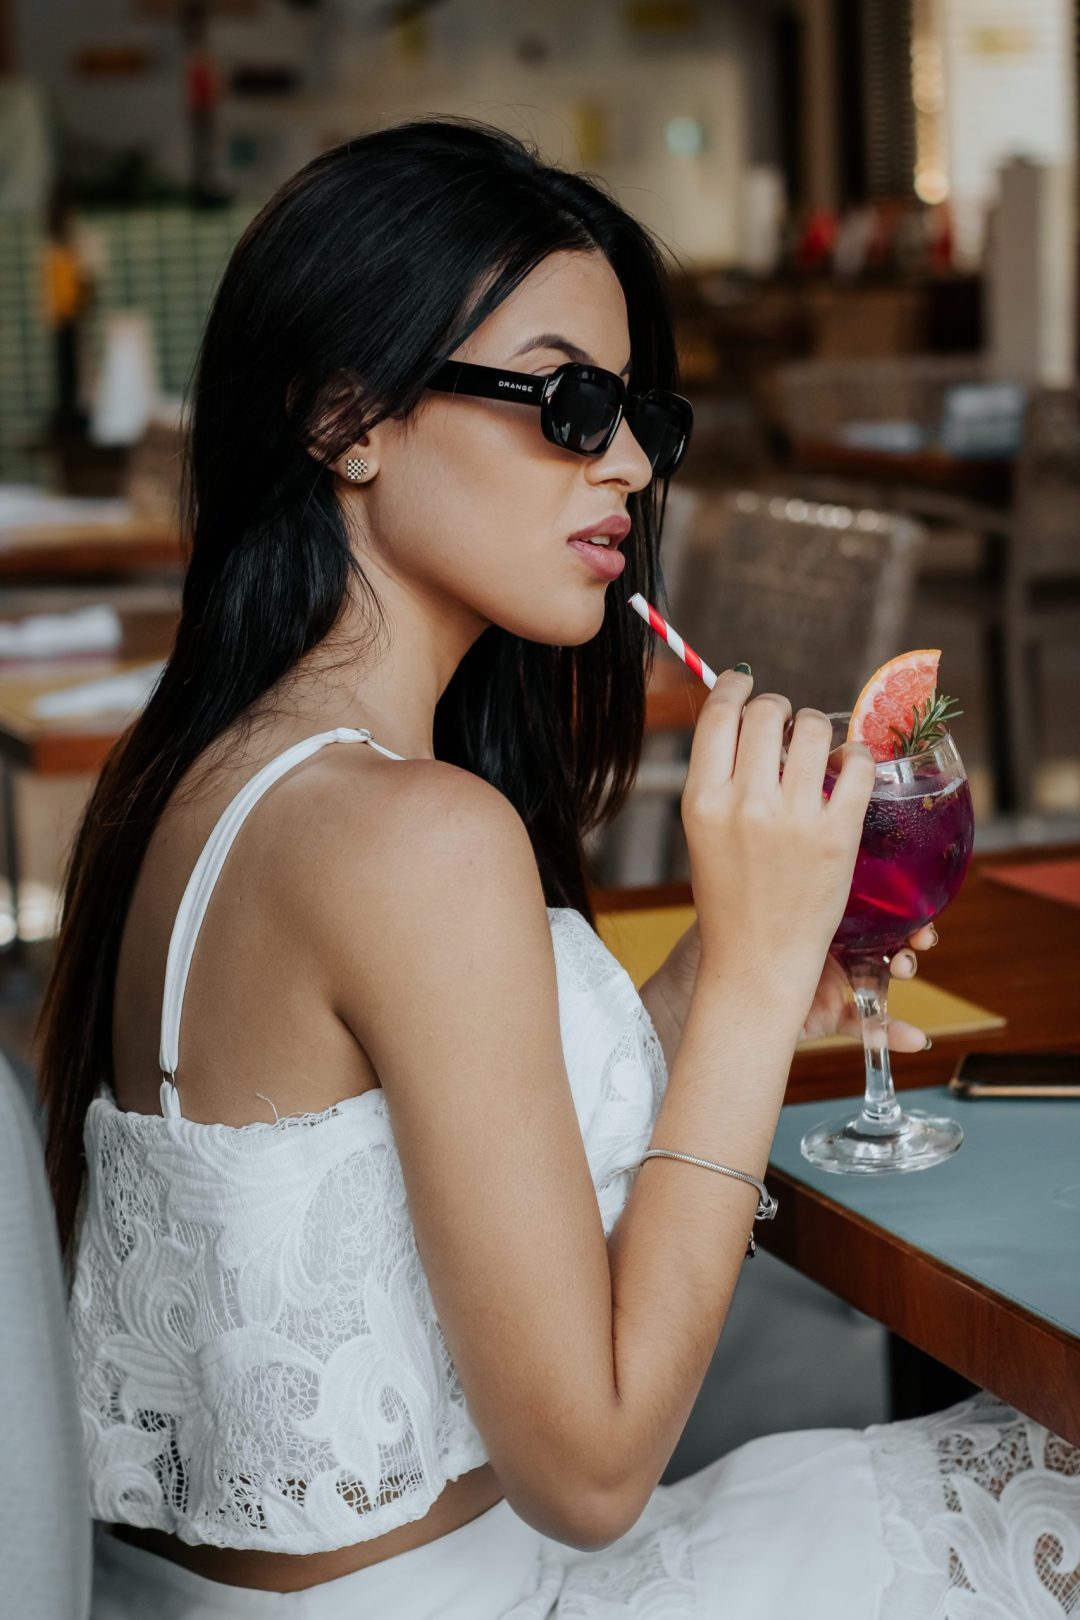 10 Most Beautiful Designer Sunglasses For Small Faces